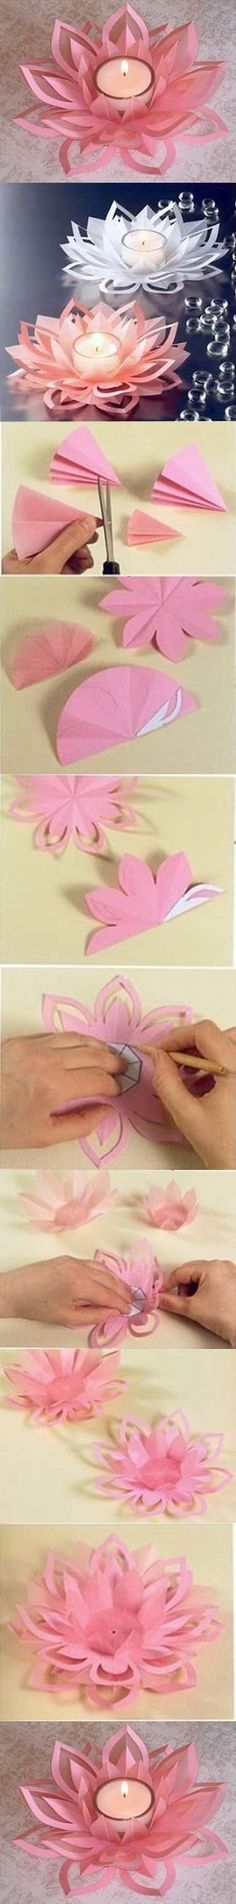 Beautiful DIY Candle Holders – Great Ideas & Tutorials for Special Occasions 2017 DIY Paper Lotus Candle Holders. More The post Beautiful DIY Candle Holders – Great Ideas & Tutorials for Special Occasions 2017 appeared first on Welcome! Diy Paper, Paper Art, Paper Crafts, Paper Glue, Diy Candle Holders, Diy Candles, Ideas Candles, Beeswax Candles, Fun Crafts